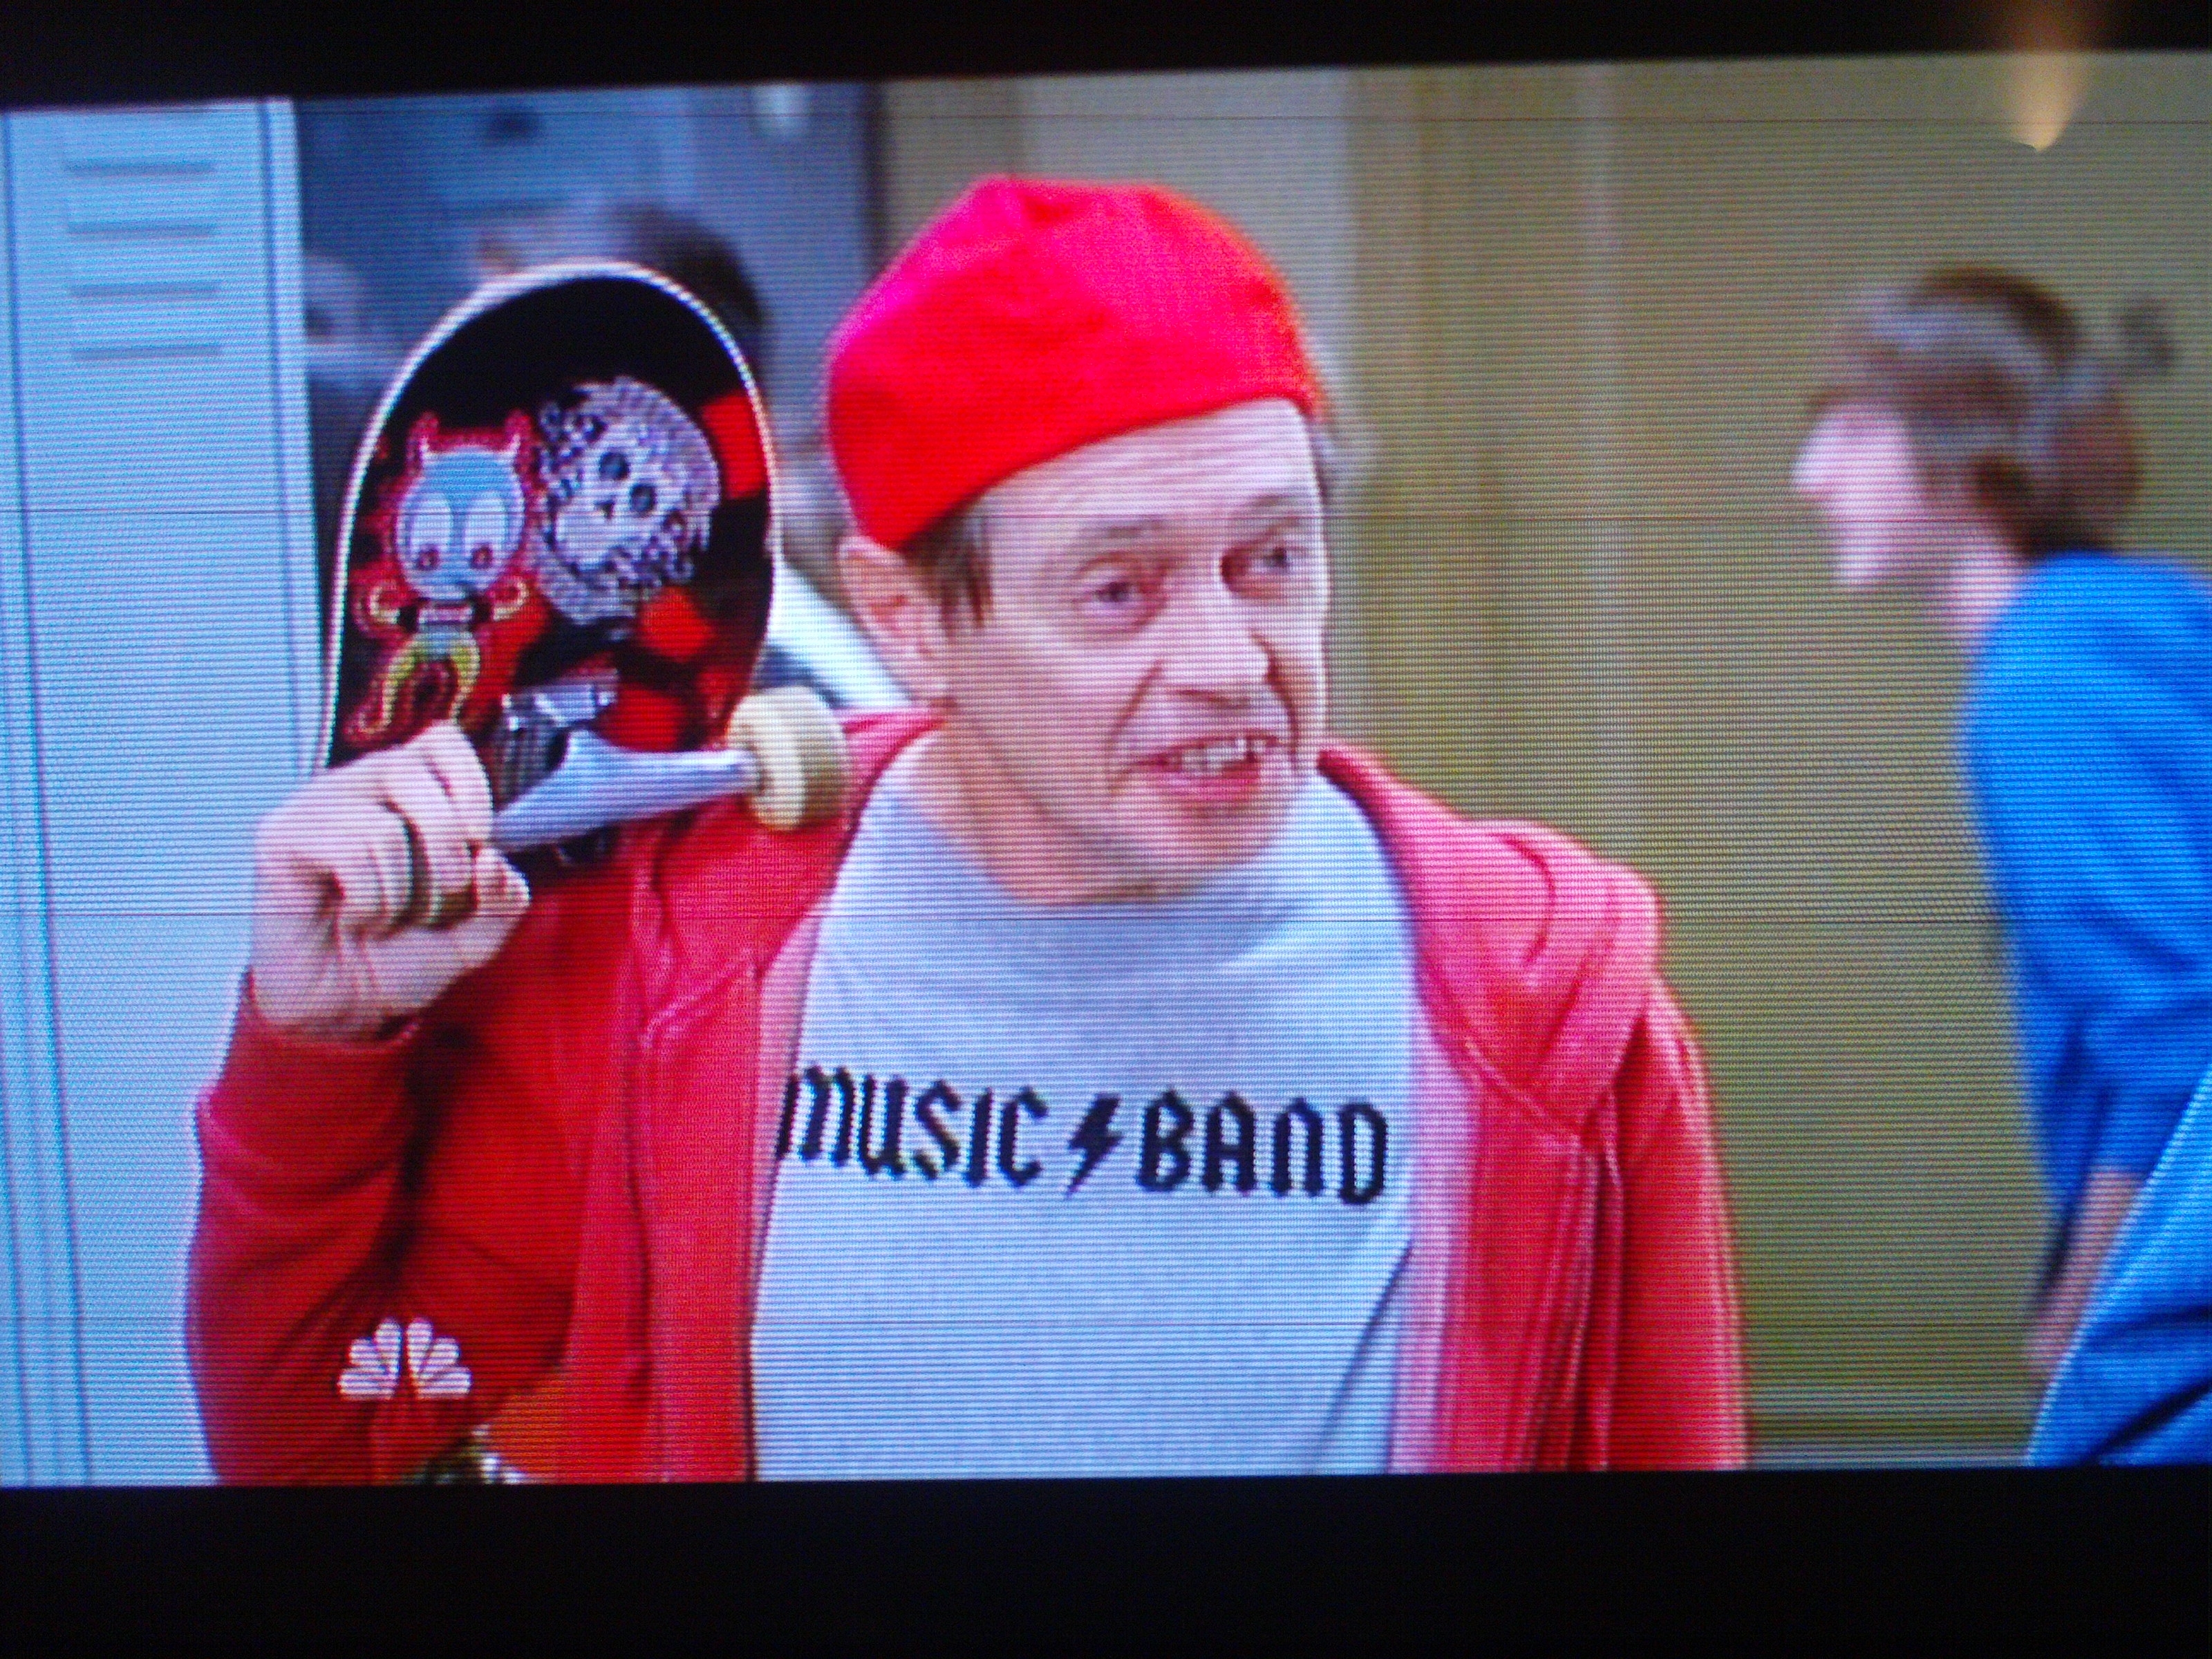 Someone was watching 30 Rock, saw Steve Buscemi wearing this, took a picture of their TV screen, and sent it to us.